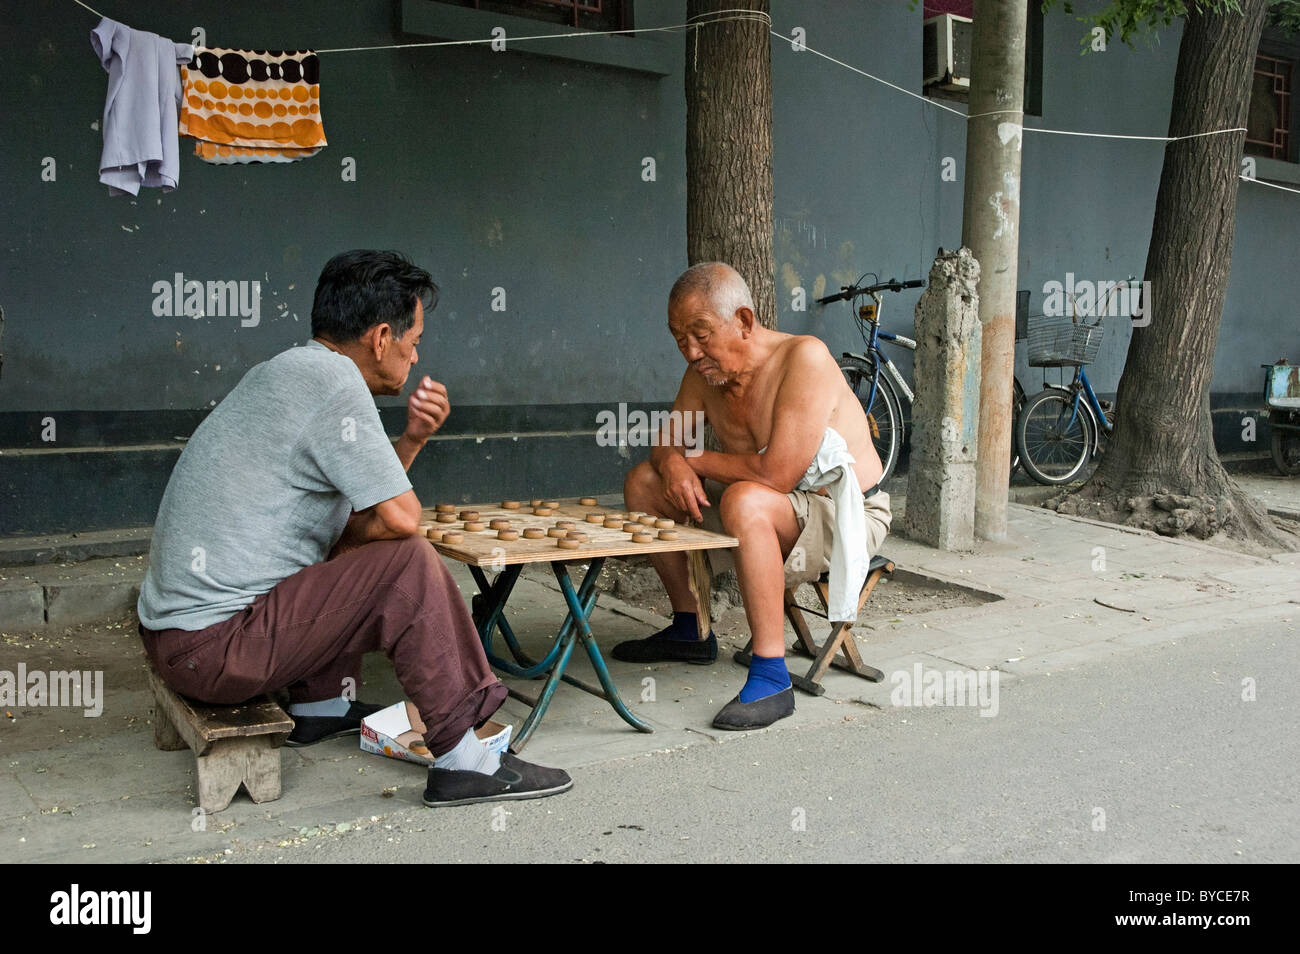 Old men playing Xiangqi or Chinese Chess in Hutong District of Beijing, China - Stock Image